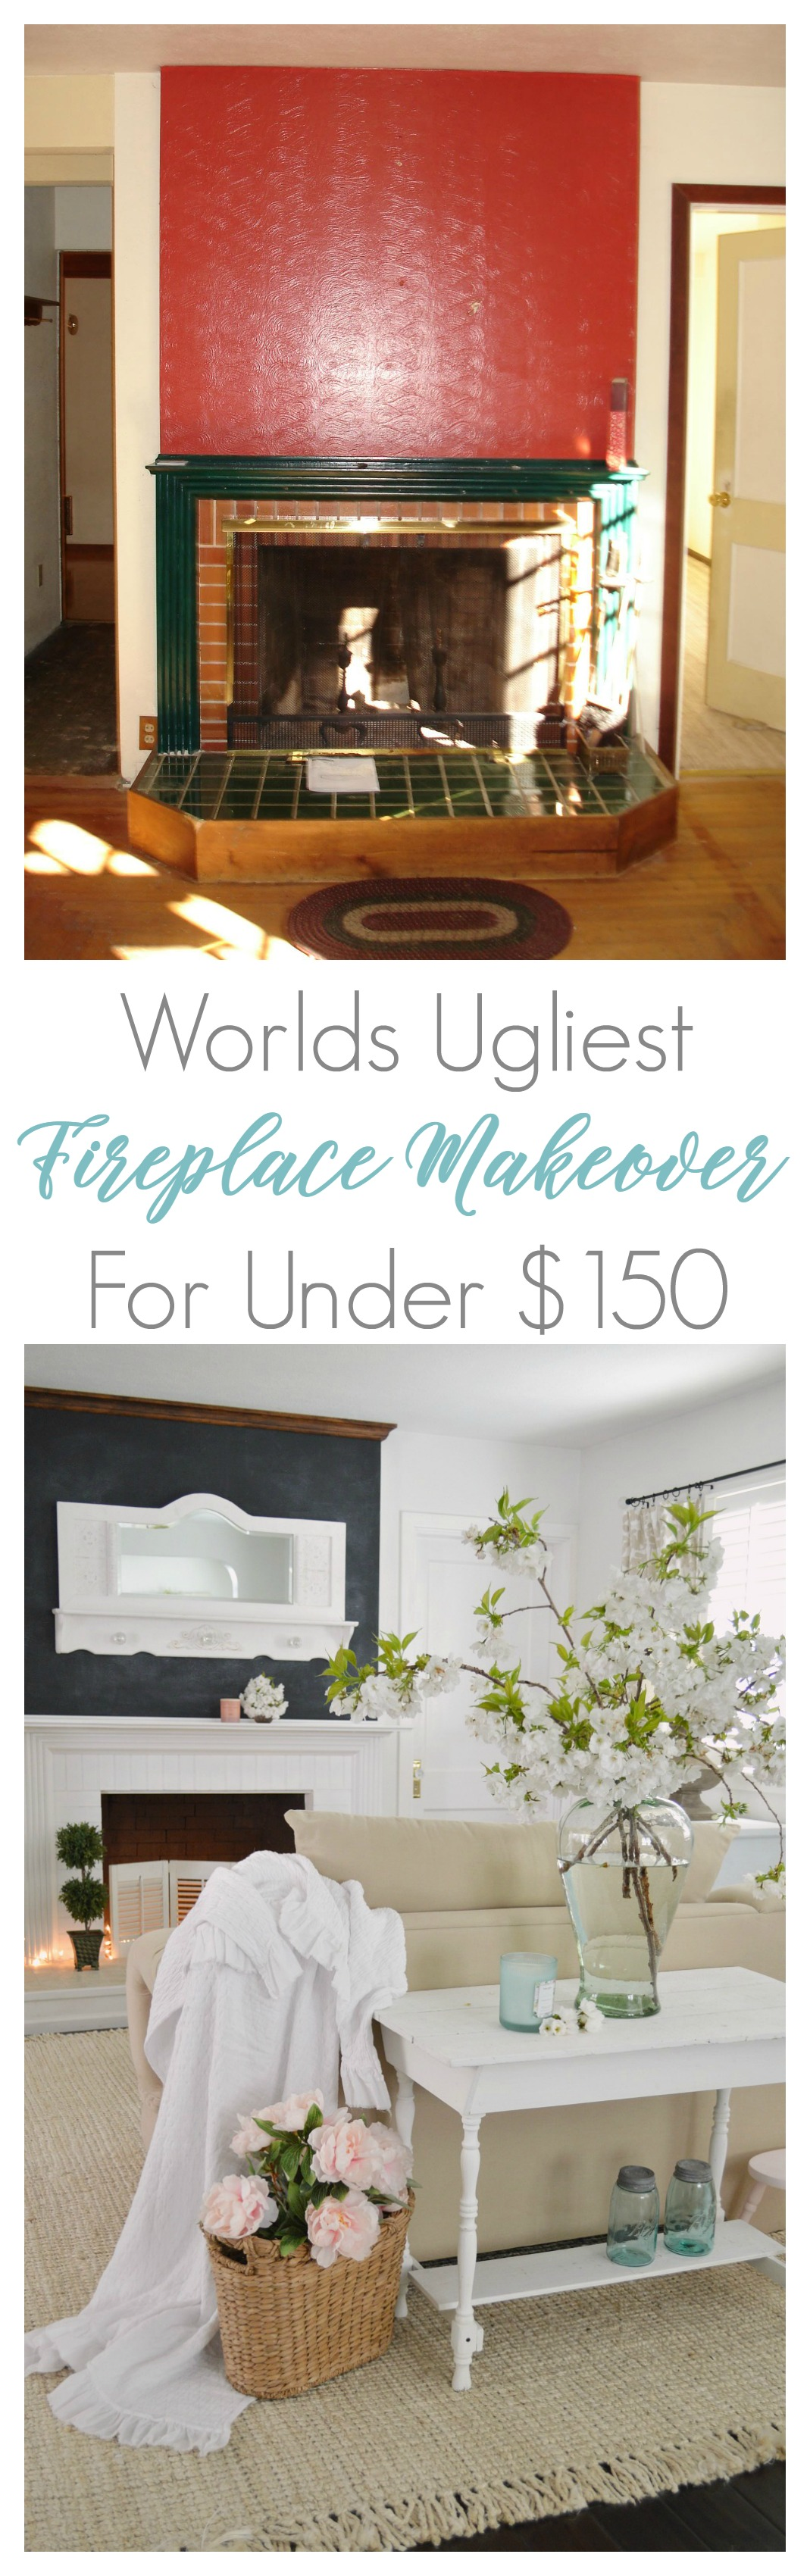 Budget friendly fixer upper fireplace makeover. This DIY mantel hearth project has lots of pictures and a full before & after, and it was under $150 for complete project! By www.foxhollowcottage.com Fox Hollow Cottage blog